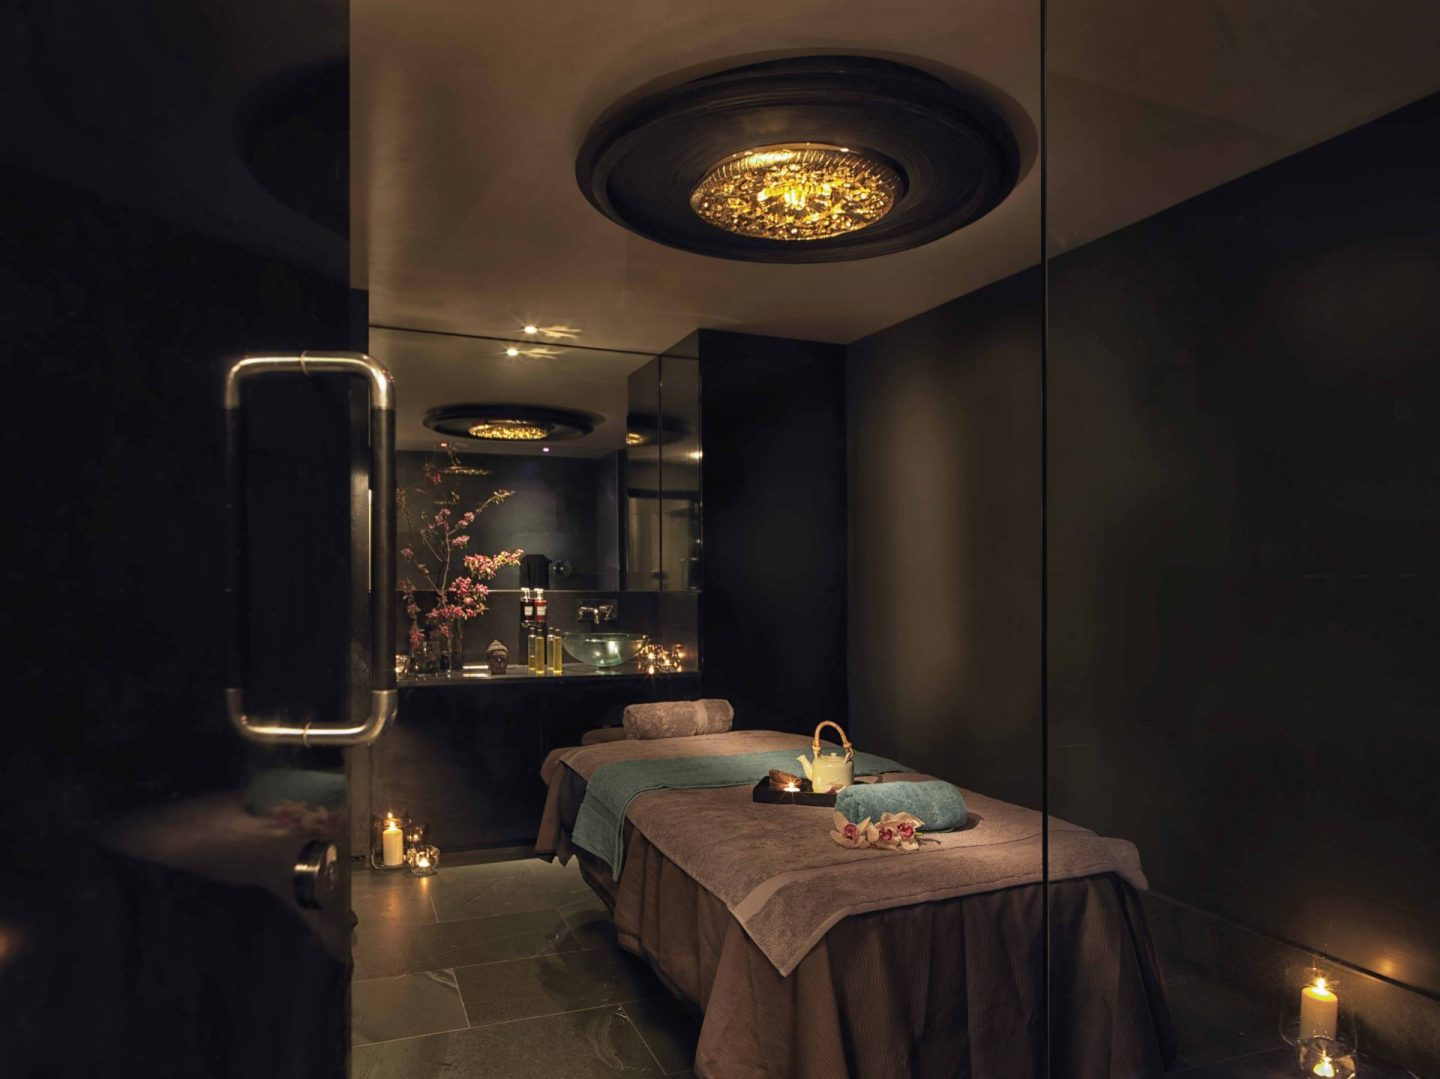 The Mayfair Spa treatment room